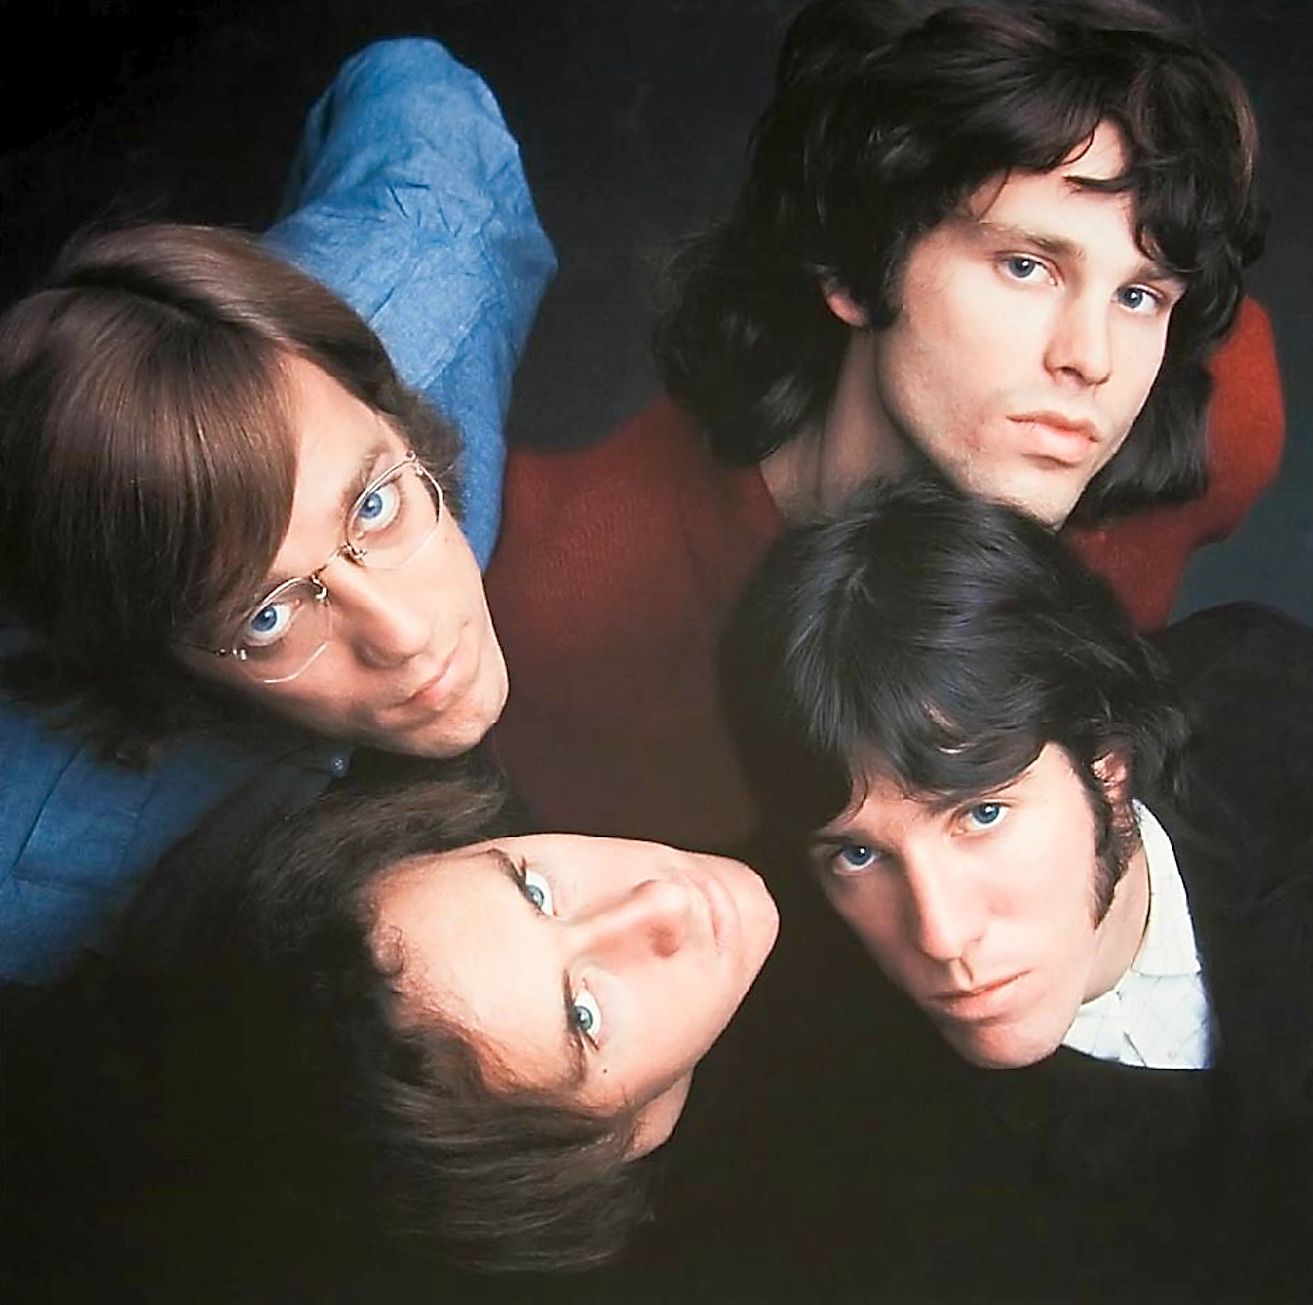 The doors easy ride lyrics